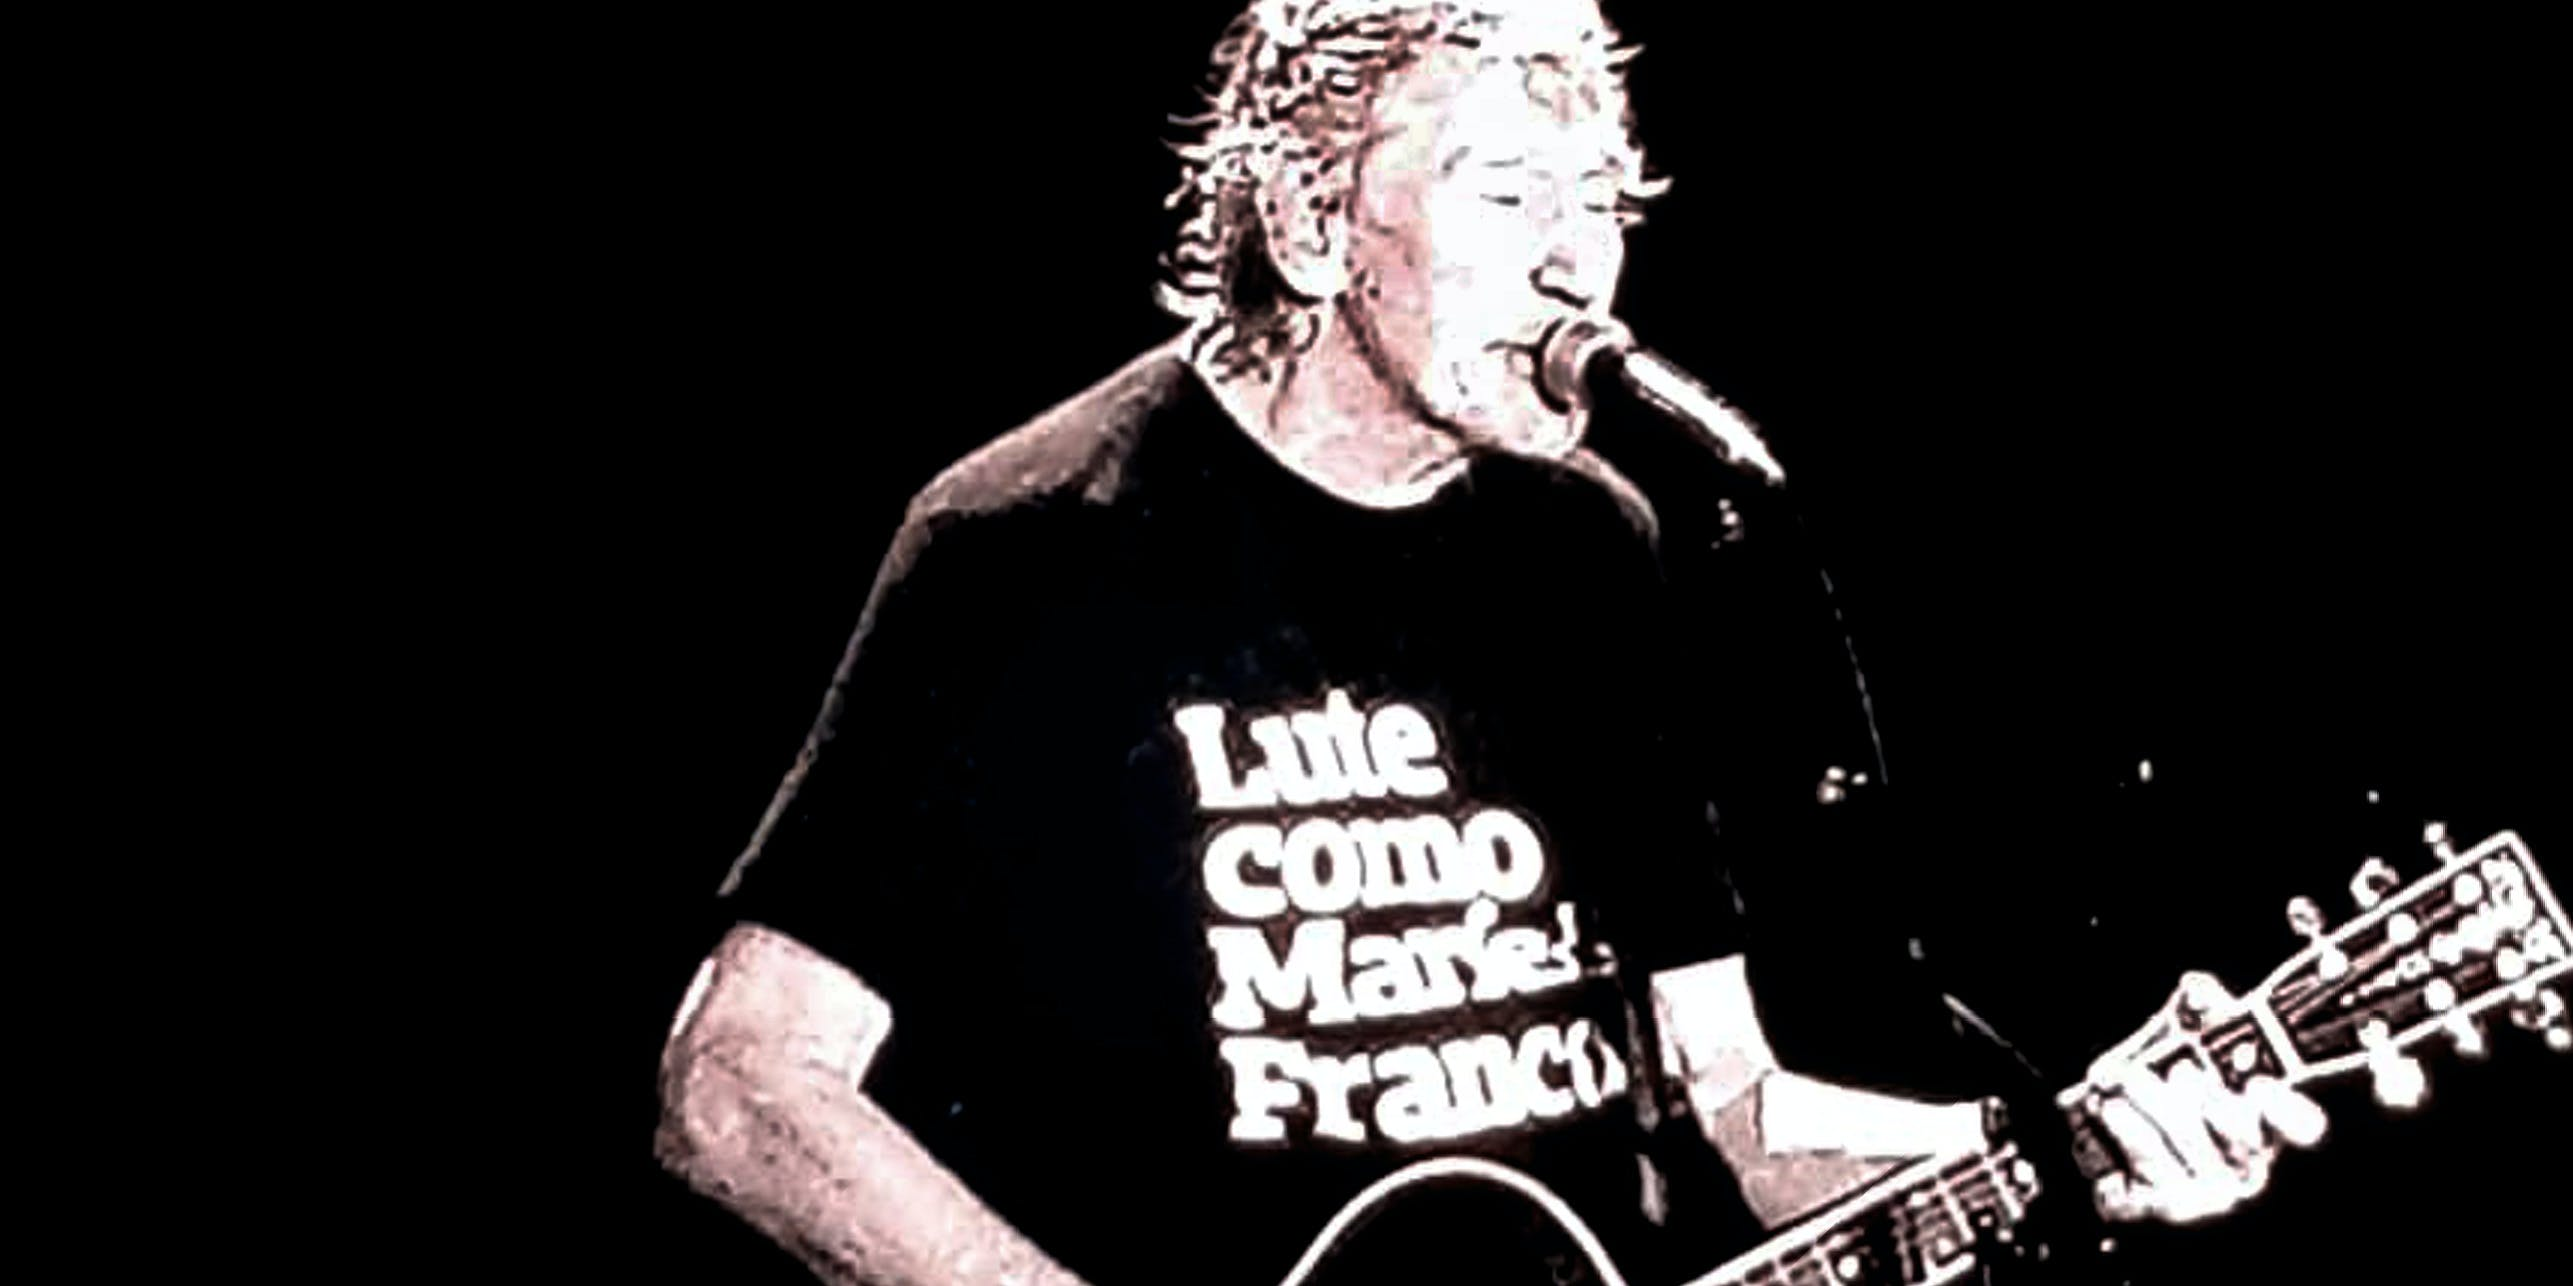 Roger Waters, Marielle Franco, and the Power of Inspiration in the Face of Darkness and Danger